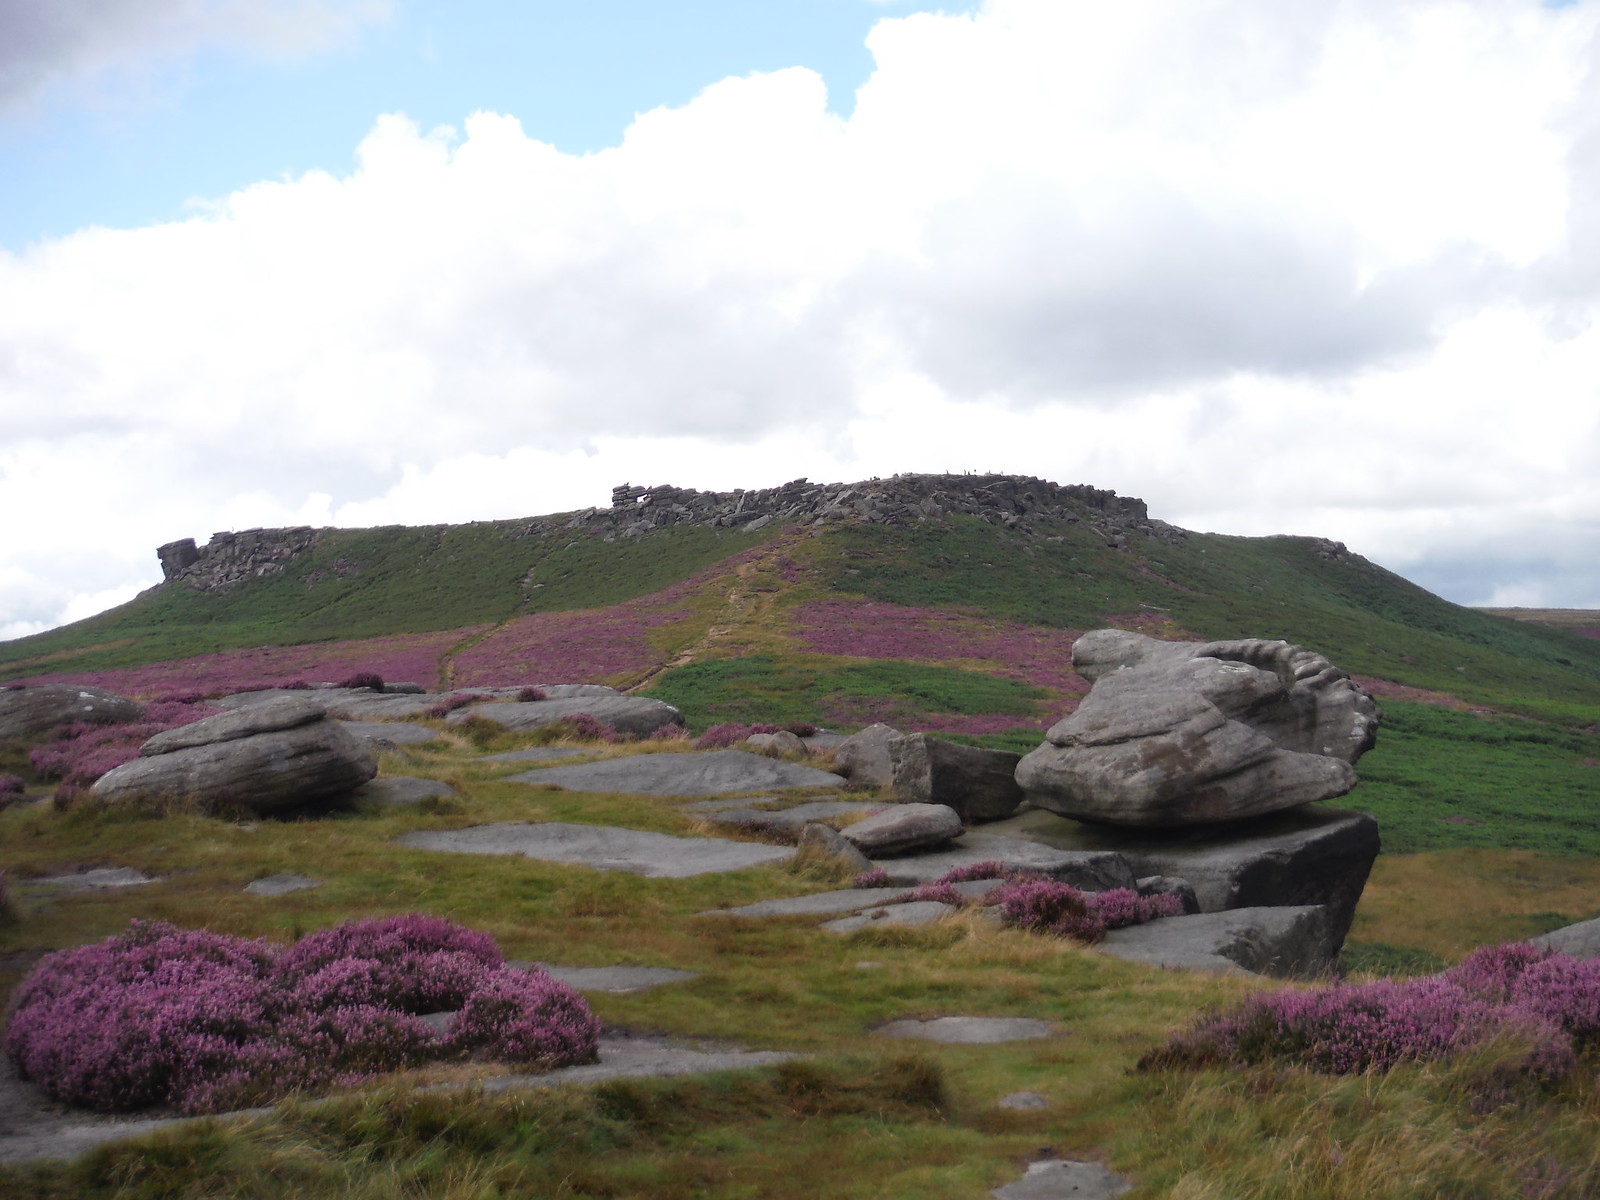 Higger Tor from Carl Wark SWC Walk 266 - Sheffield to Bamford (via Burbage Rocks and Stanage Edge) or to Moscar Lodge [via Carl Wark and Higger Tor Alternative]